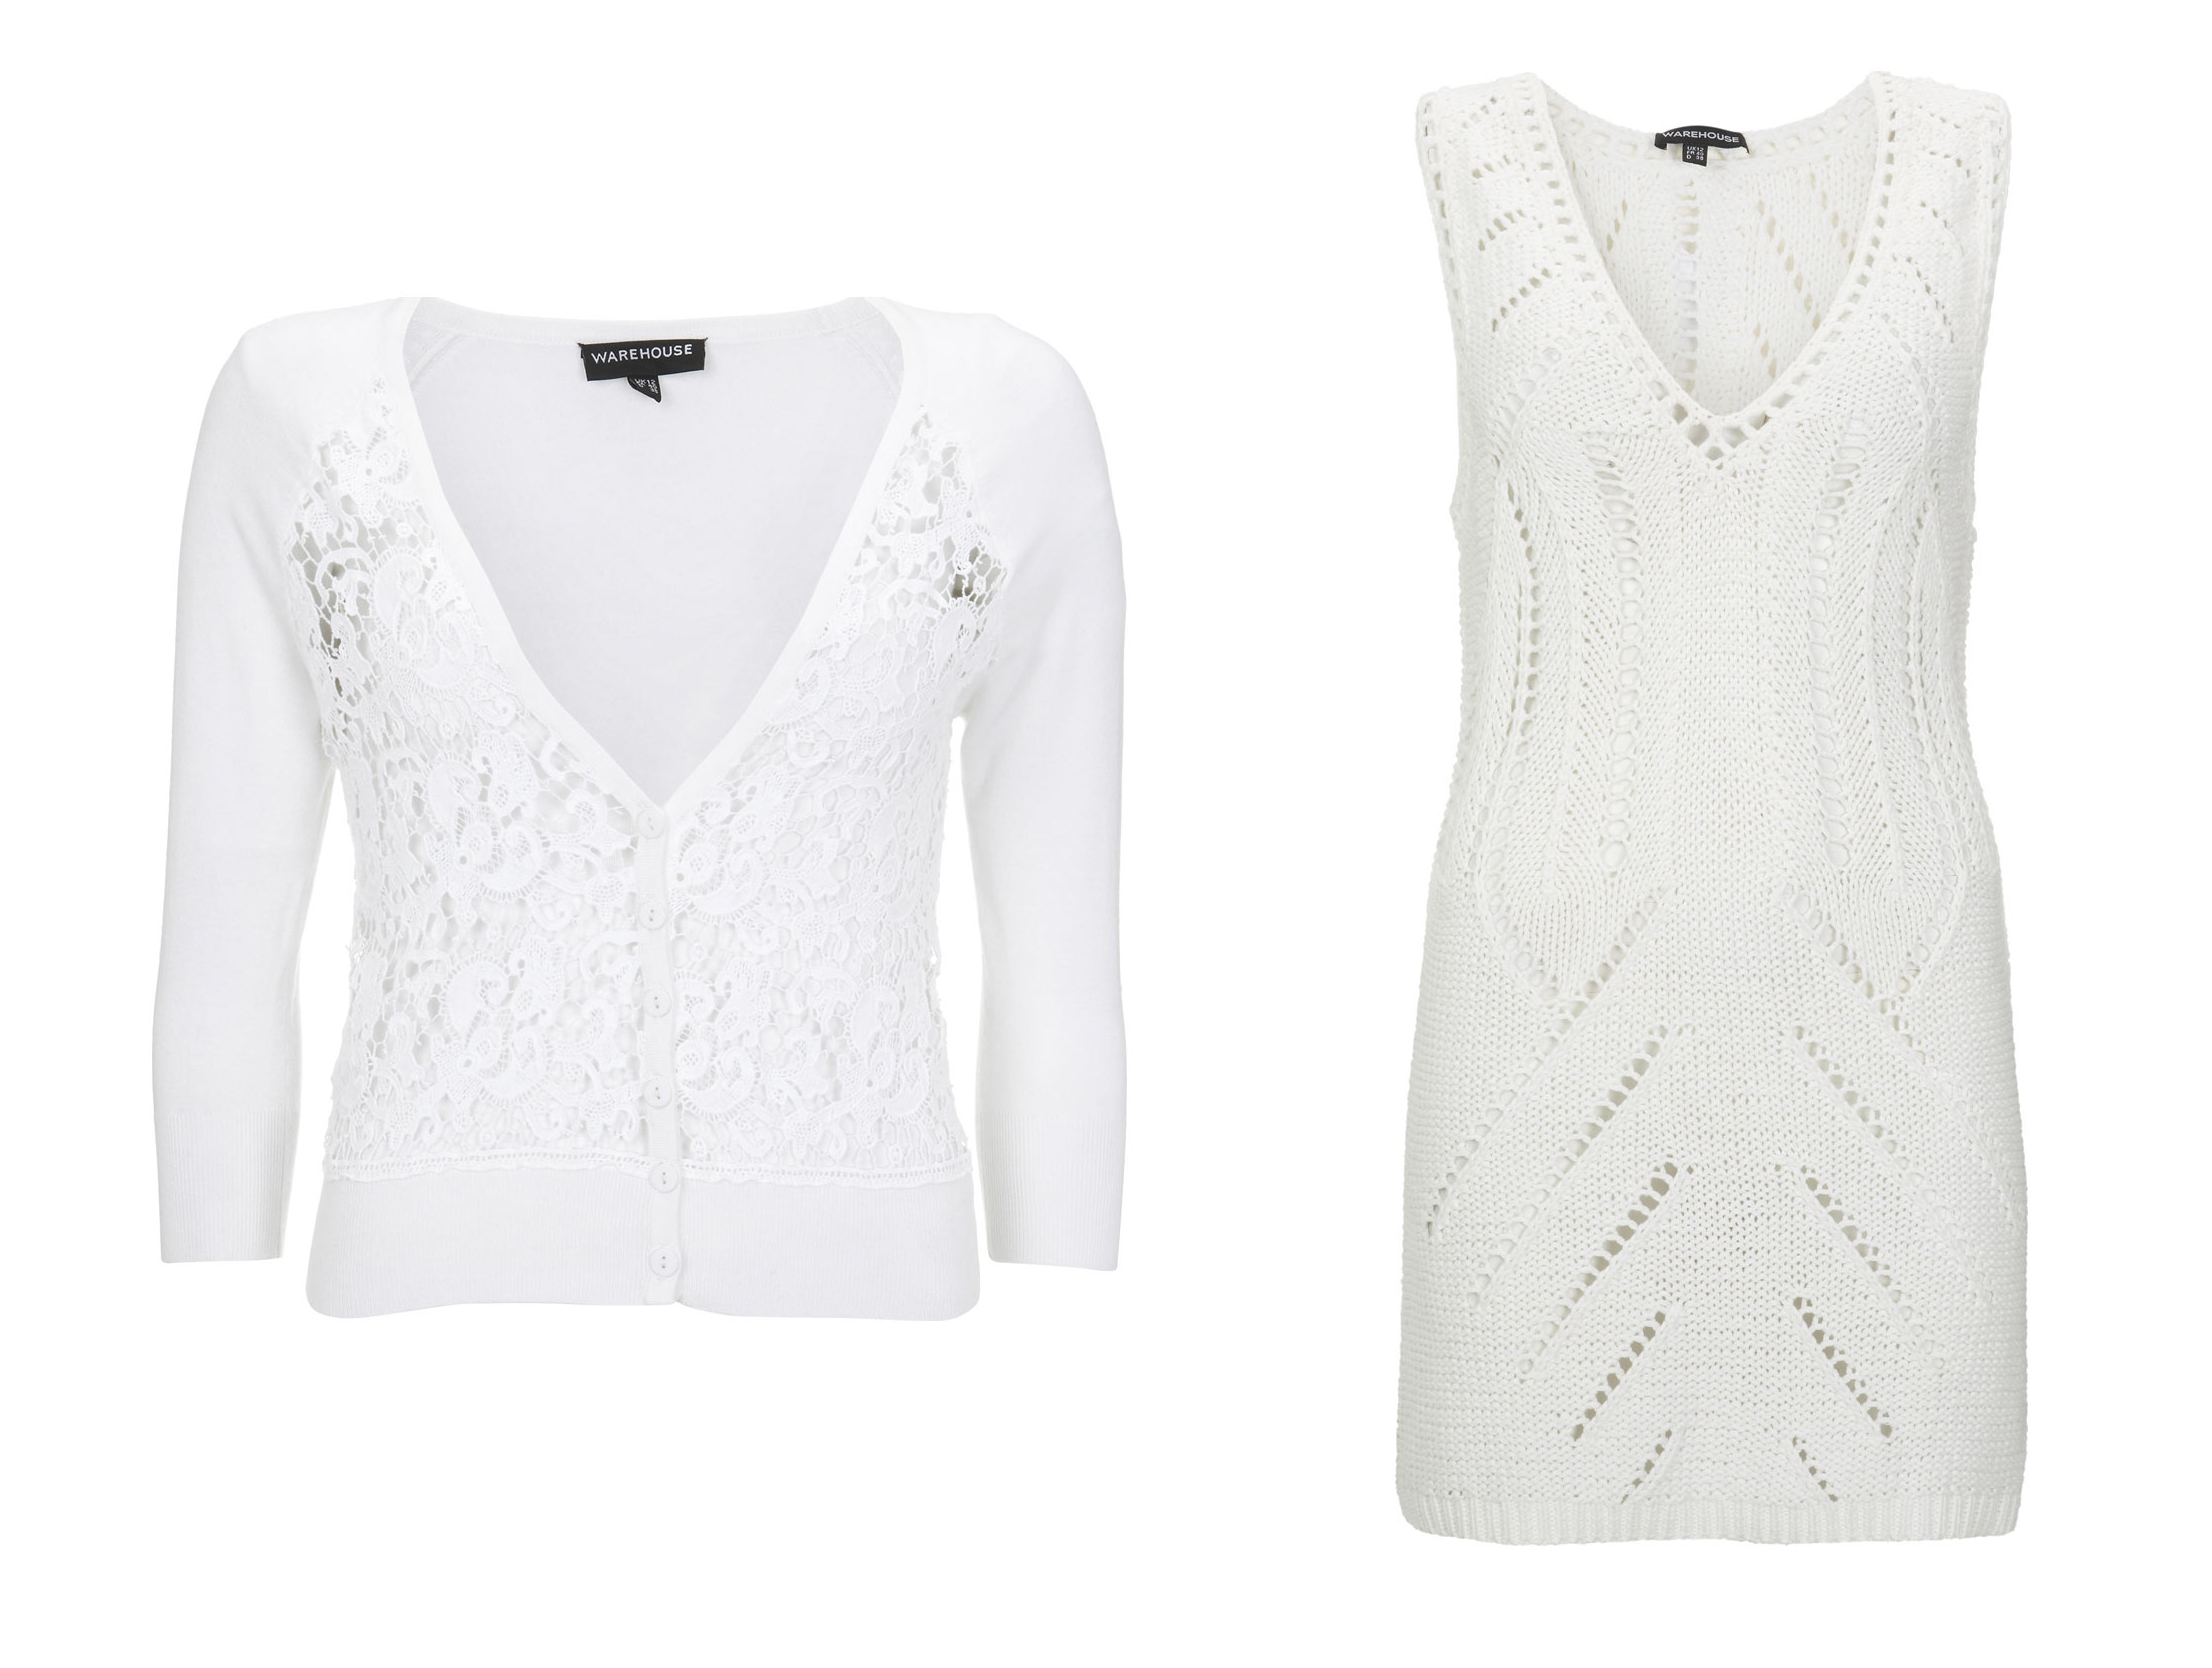 Crochet Dress €52 Crop lace panel cardi €46 Warehouse